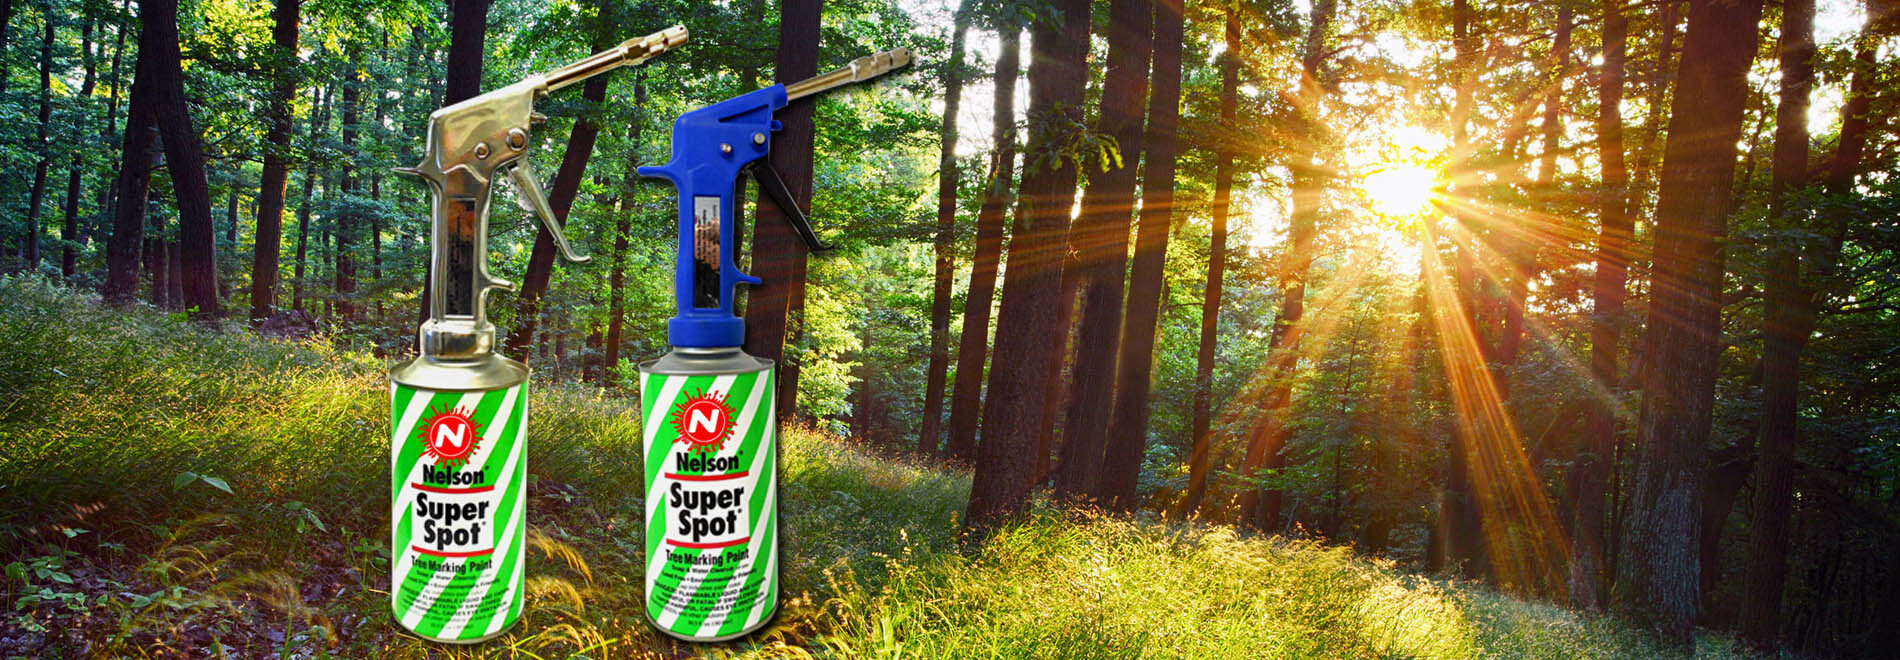 Our tree marking paint guns are the standard in the forestry industry.